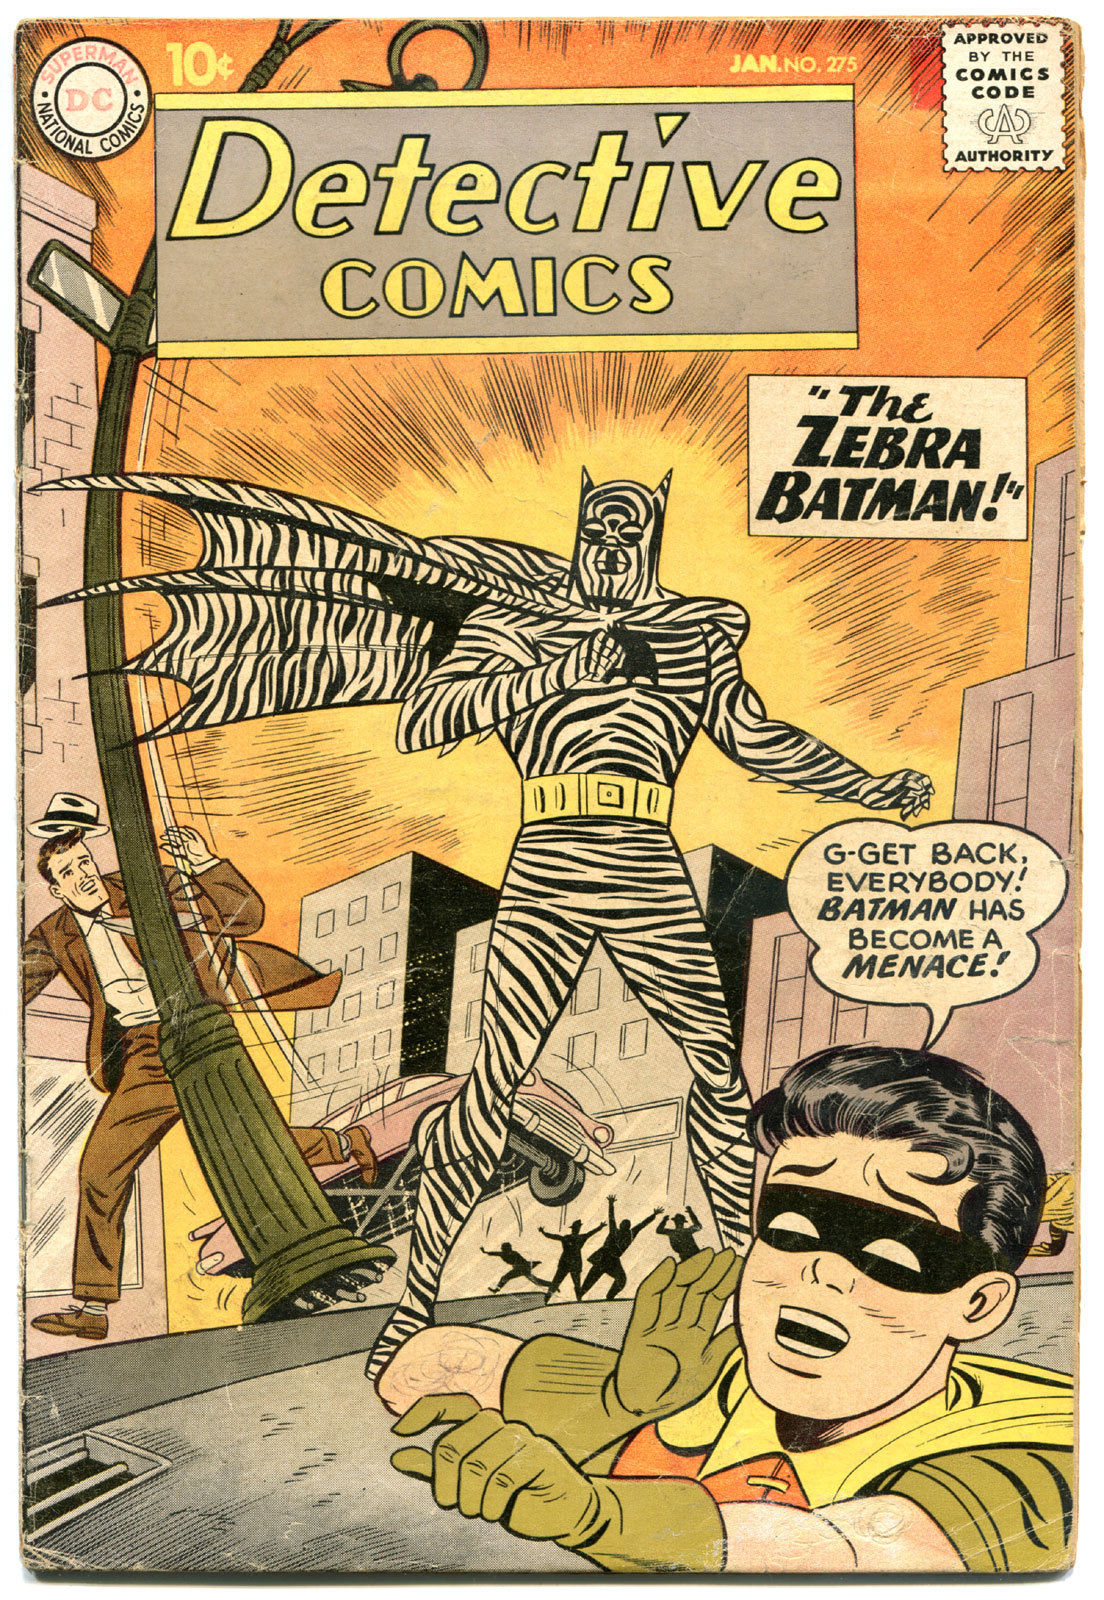 DETECTIVE COMICS #275, GD+, Bob Kane, Caped Crusader, 1937 1960, more in store